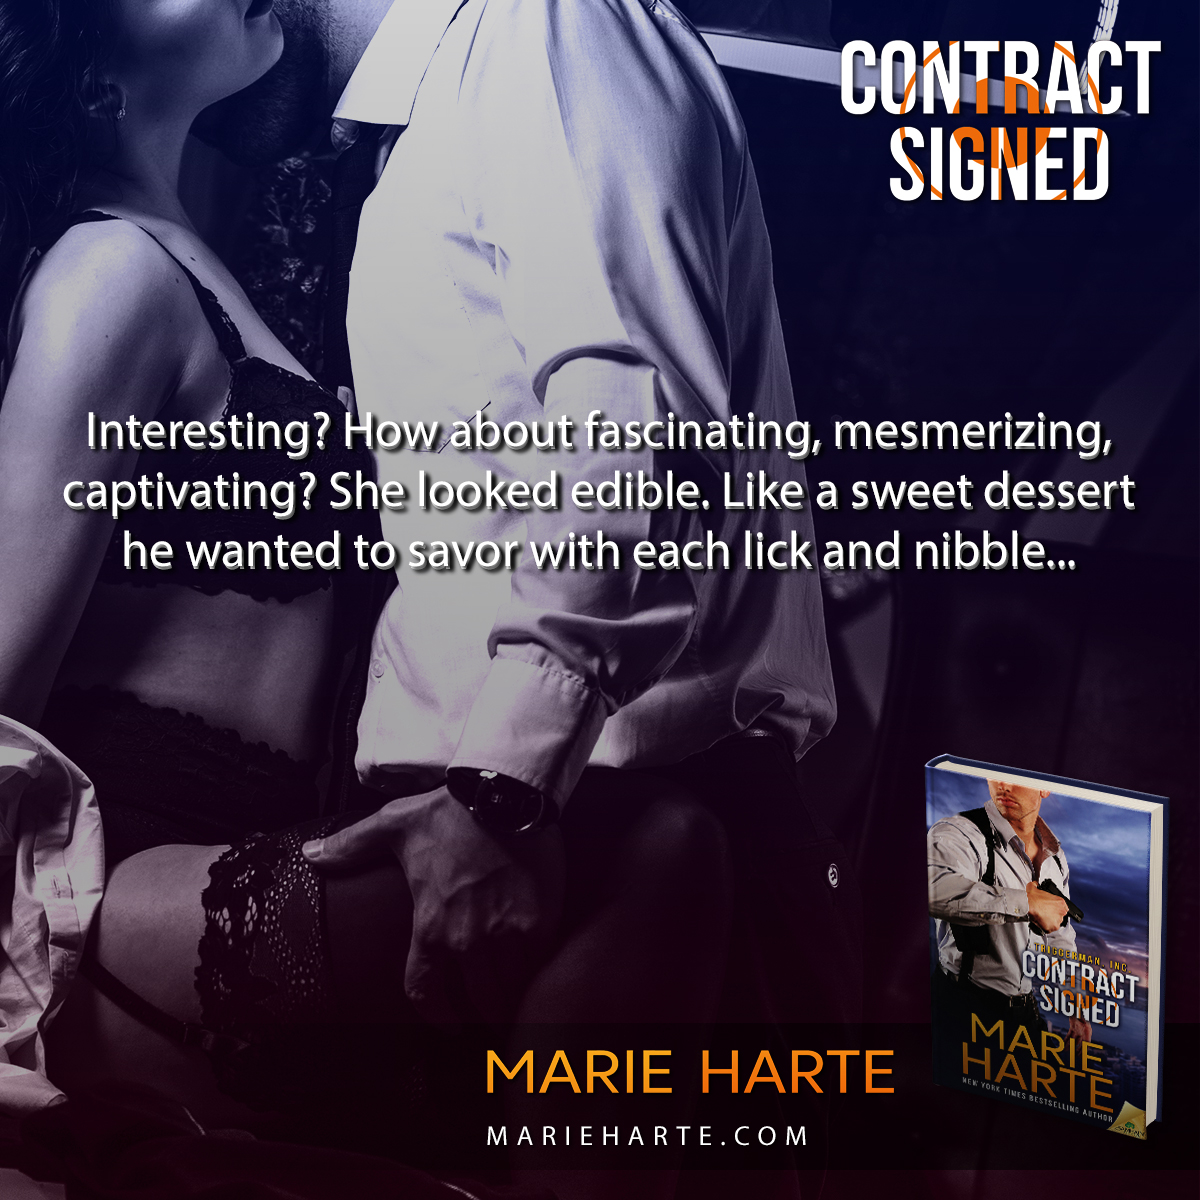 Contract Signed by Marie Harte